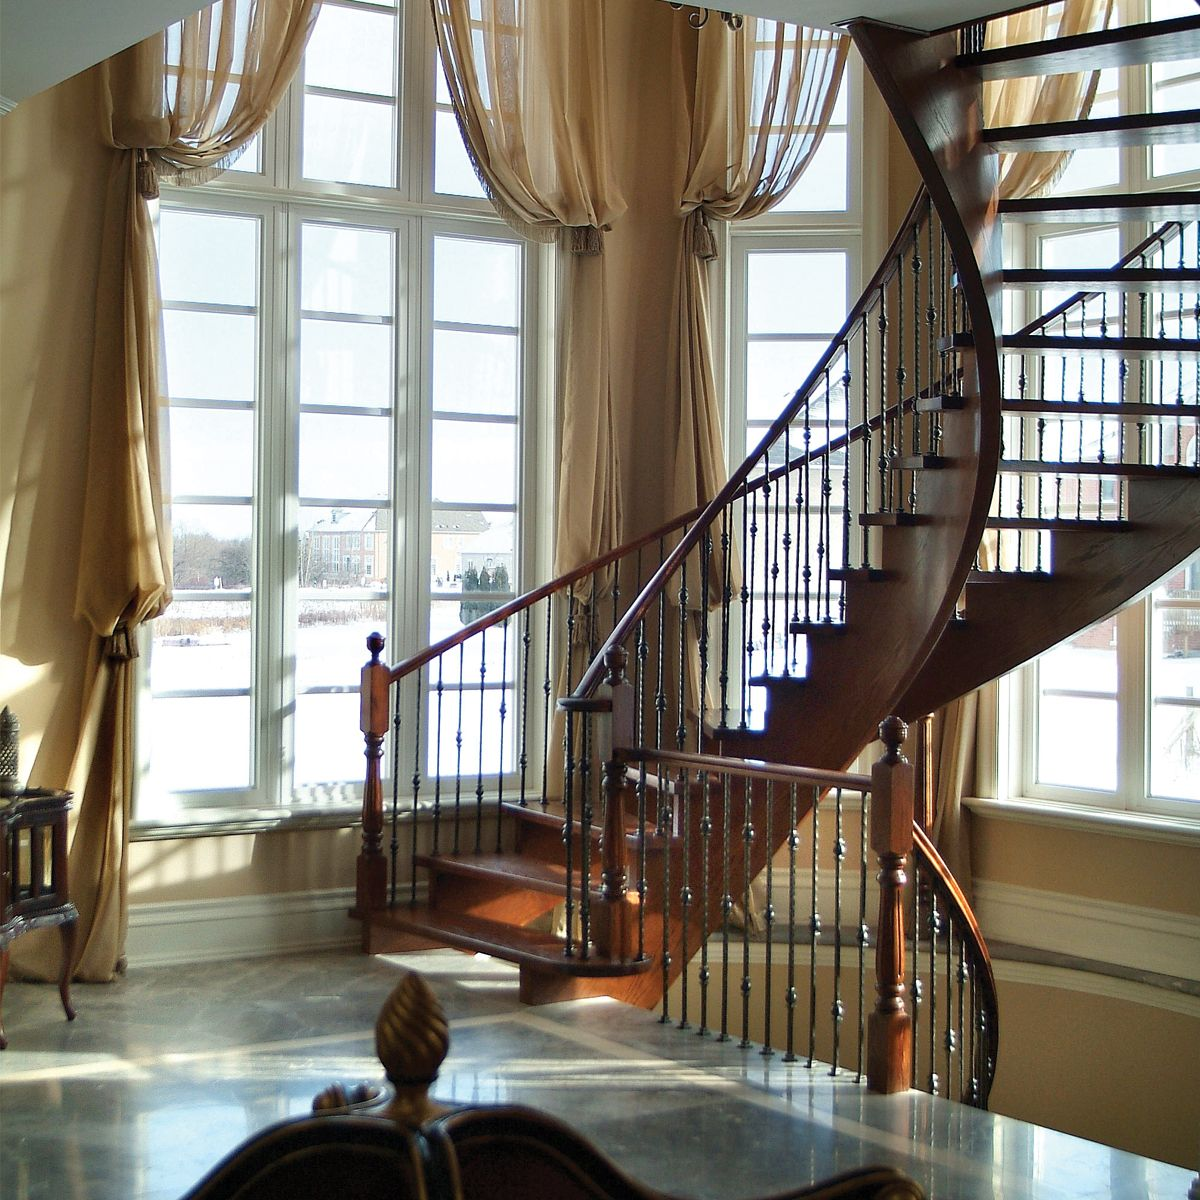 The major difference between window city vinyl windows and lower